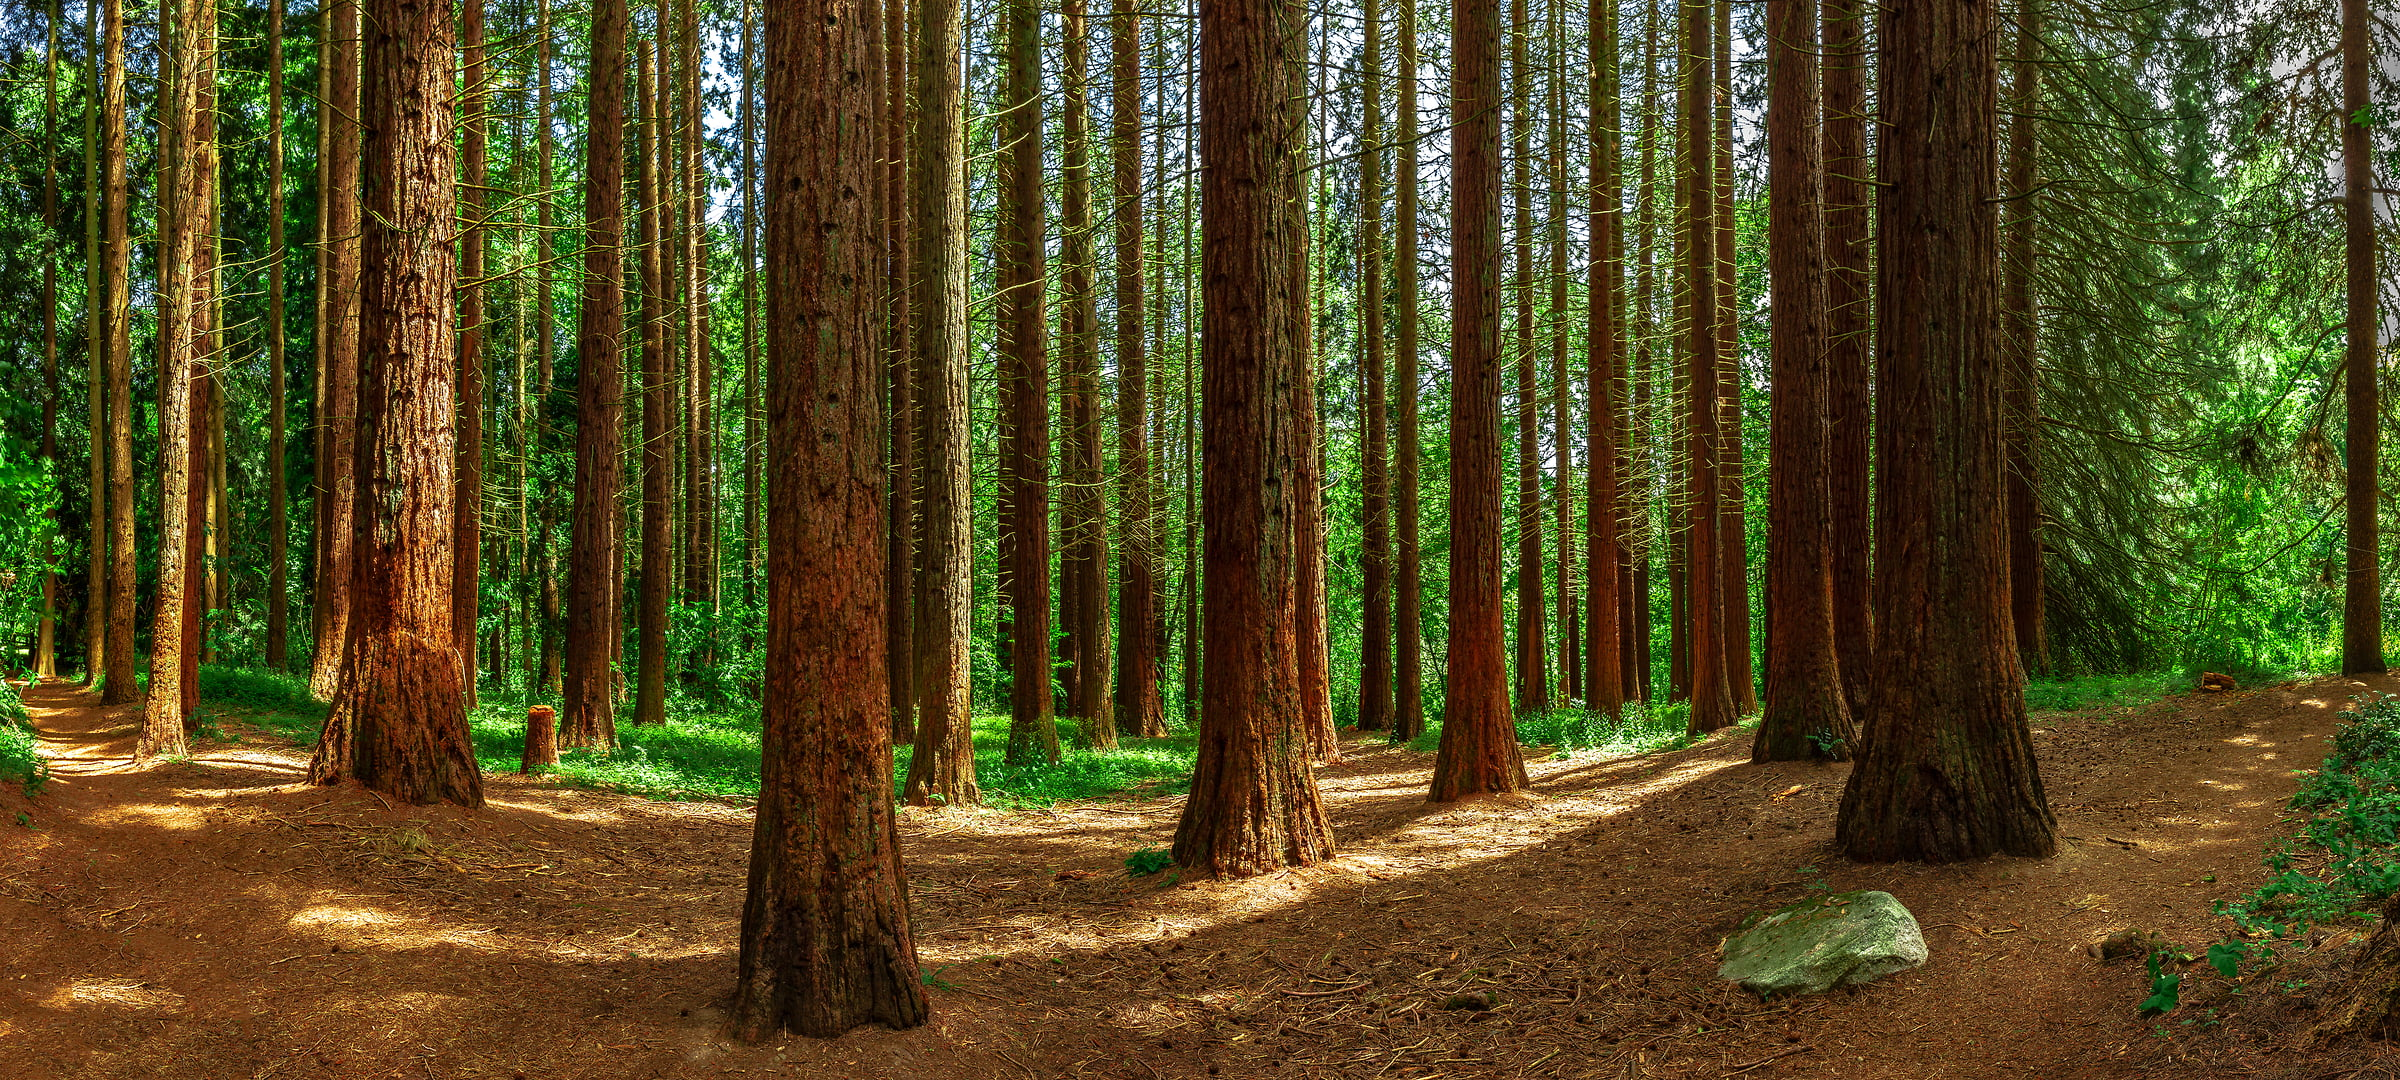 184 megapixels! A very high resolution, large-format VAST photo print of a pine tree forest; nature photograph created by Chris Collacott in Redwood Park, Surrey, British Columbia, Canada